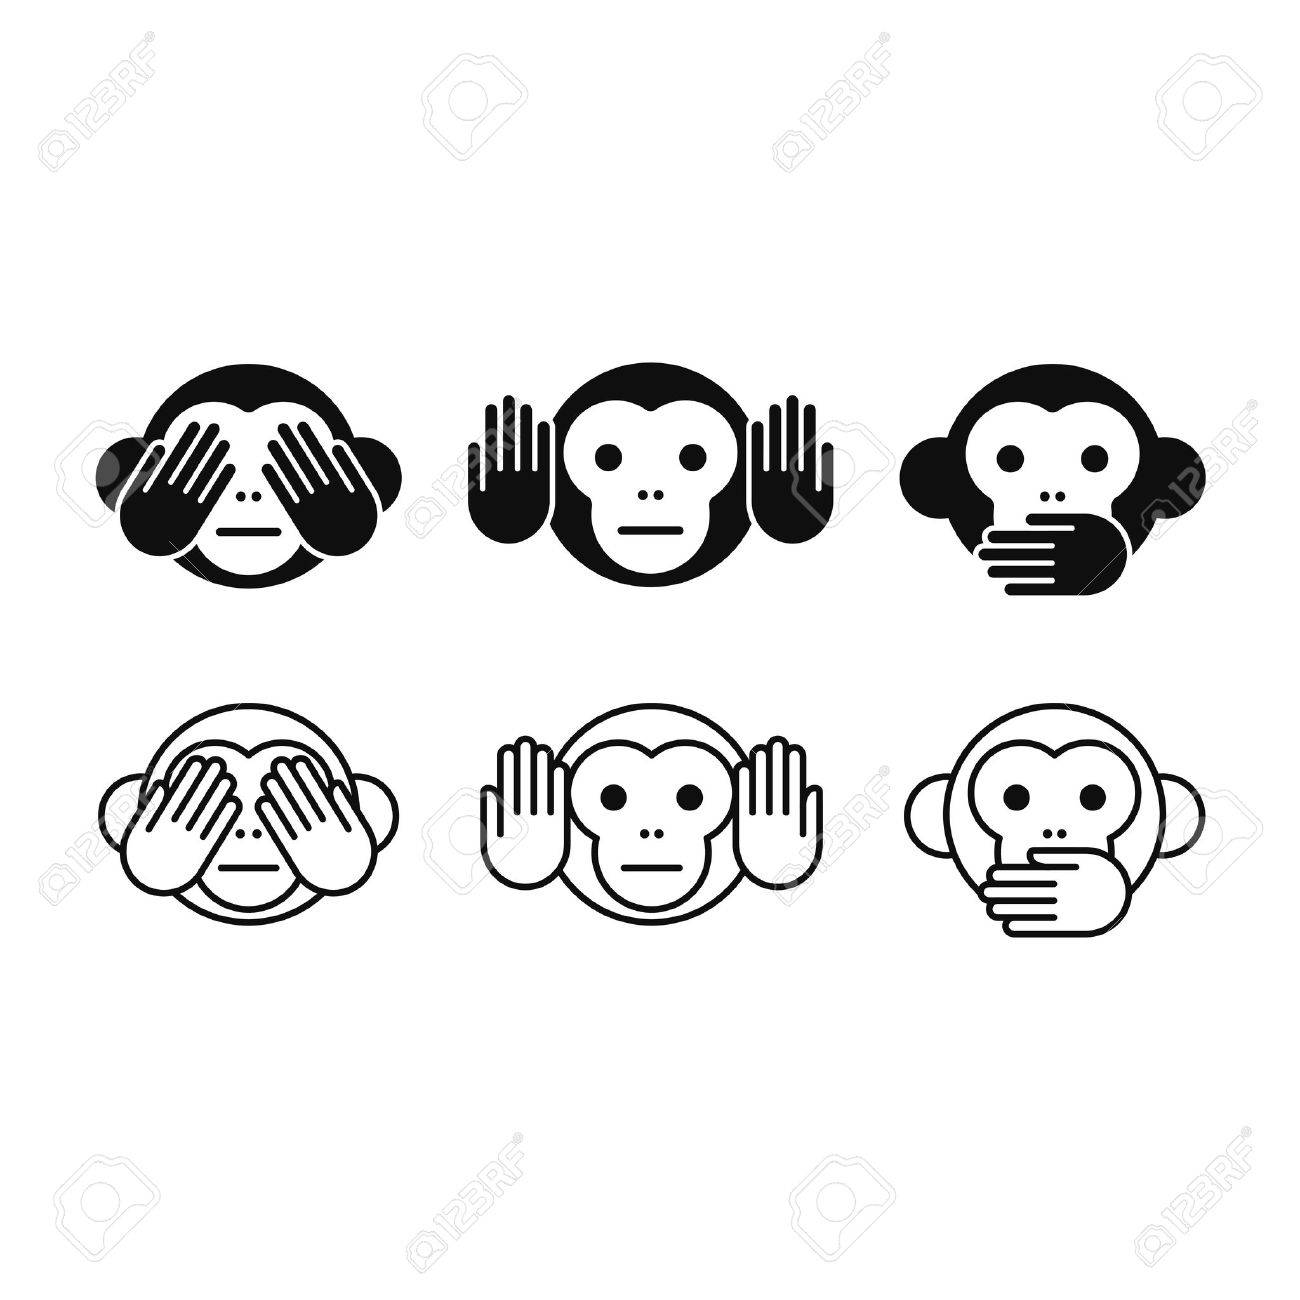 See no Evil, Hear no Evil, Speak no Evil monkey icon set in two styles, solid and line. Simple modern vector illustration. - 56736284